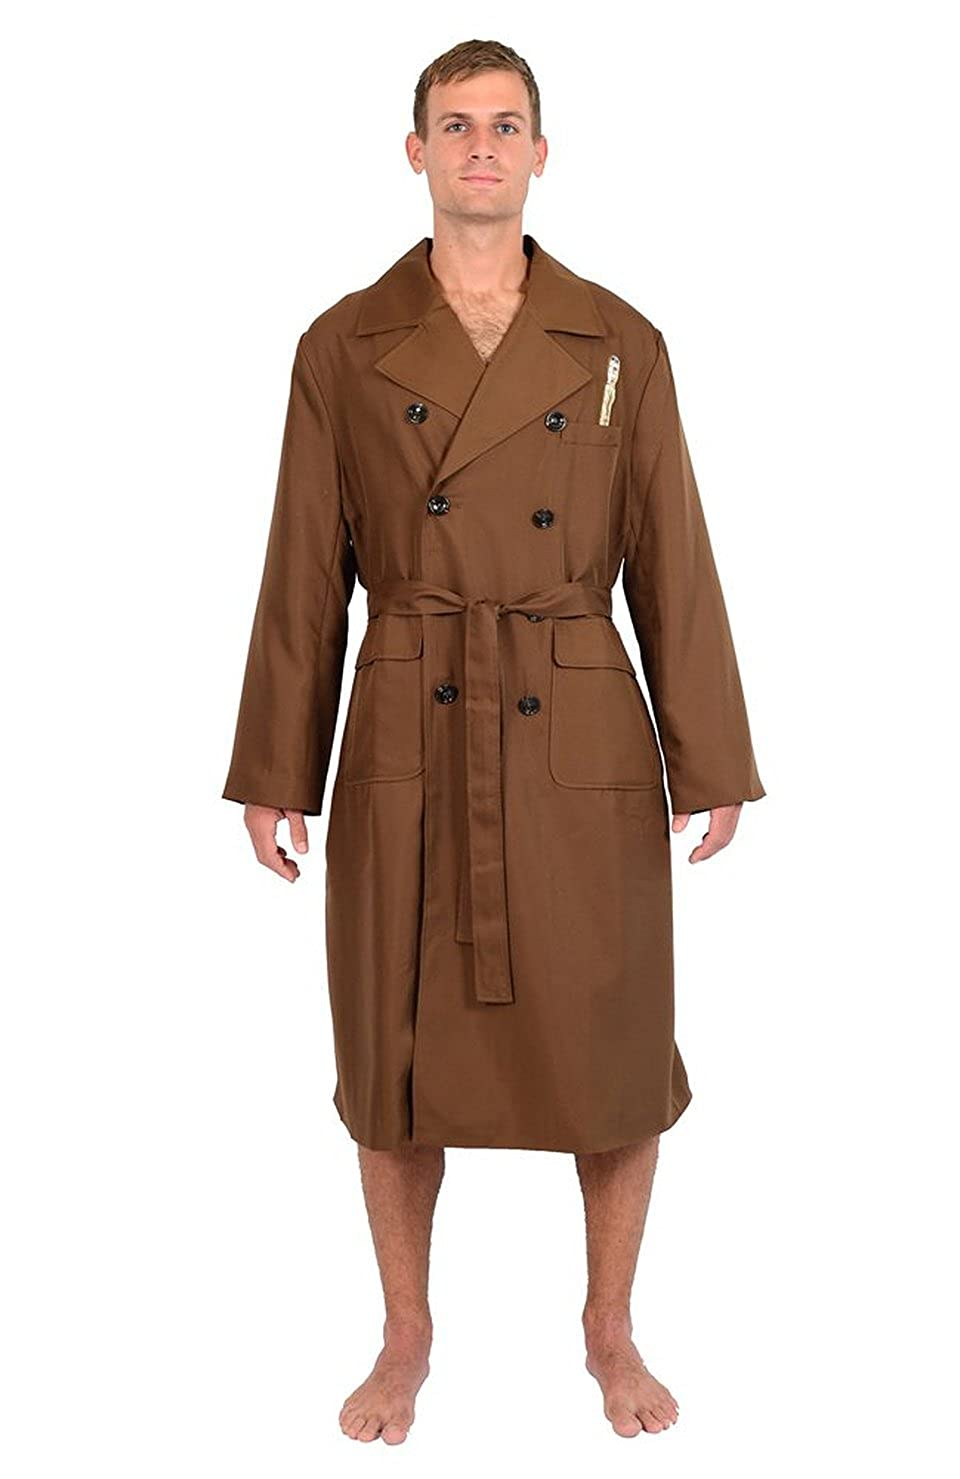 dbee883e78 Top1  Doctor Who 10th Doctor Brown Trench Coat Jacket Styled Robe Multi One  Size Fits Most